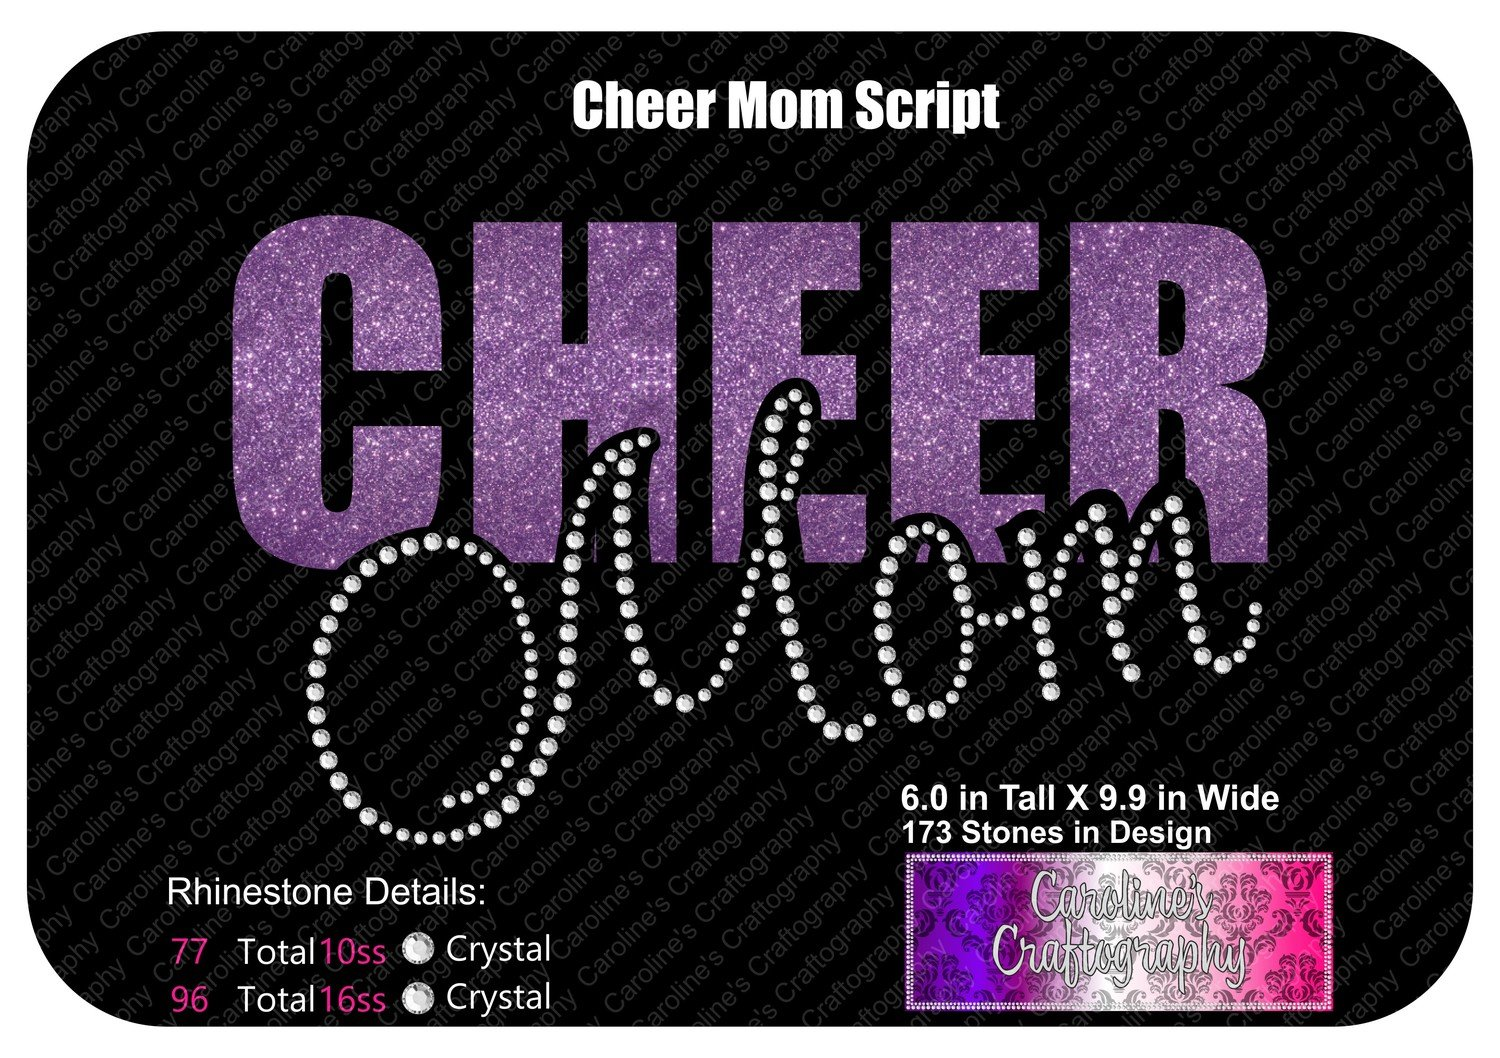 Cheer Mom Script Stone Vinyl (SV)